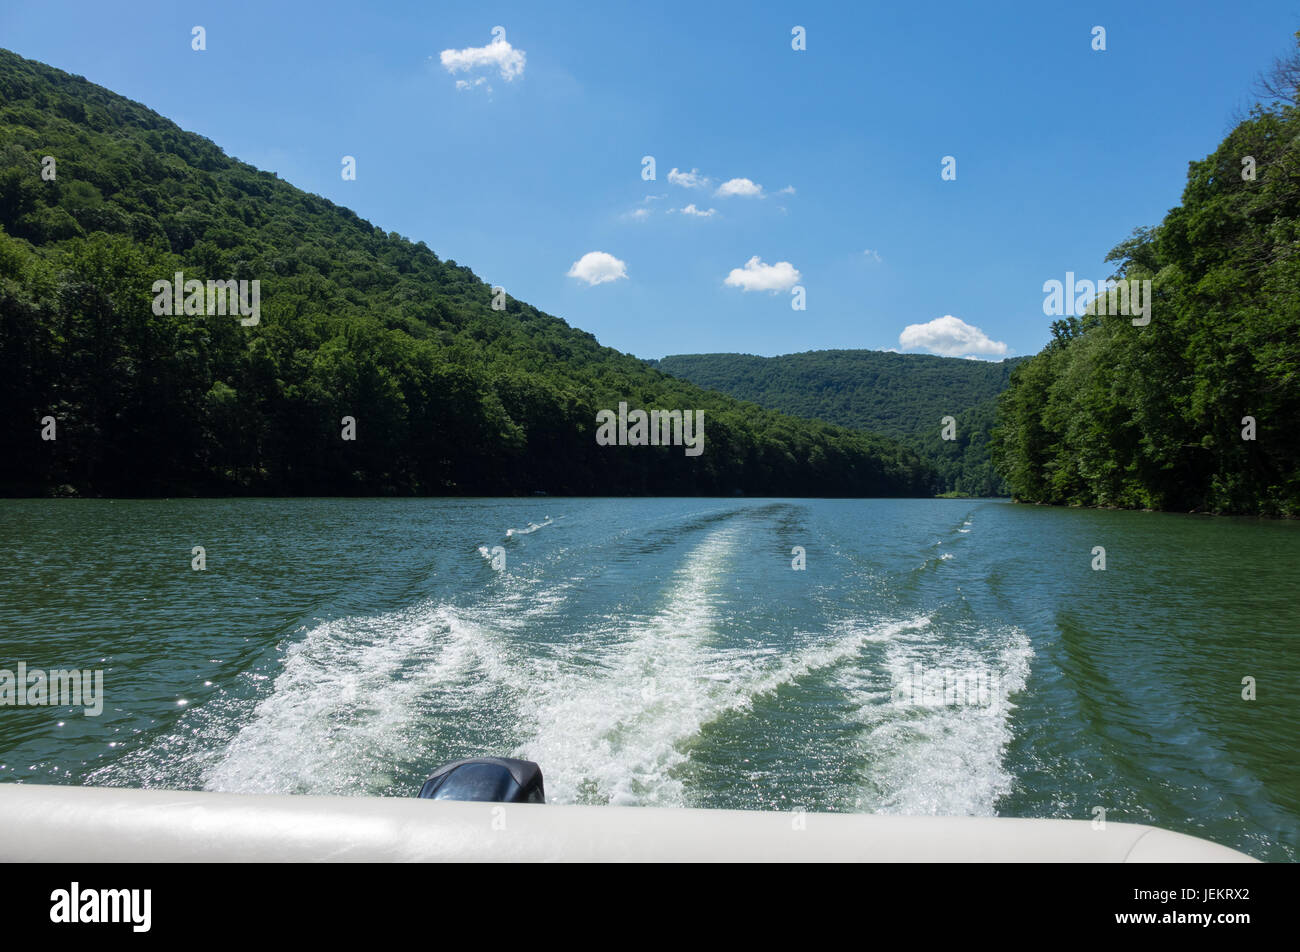 Wash behind speedboat on Cheat Lake Morgantown - Stock Image